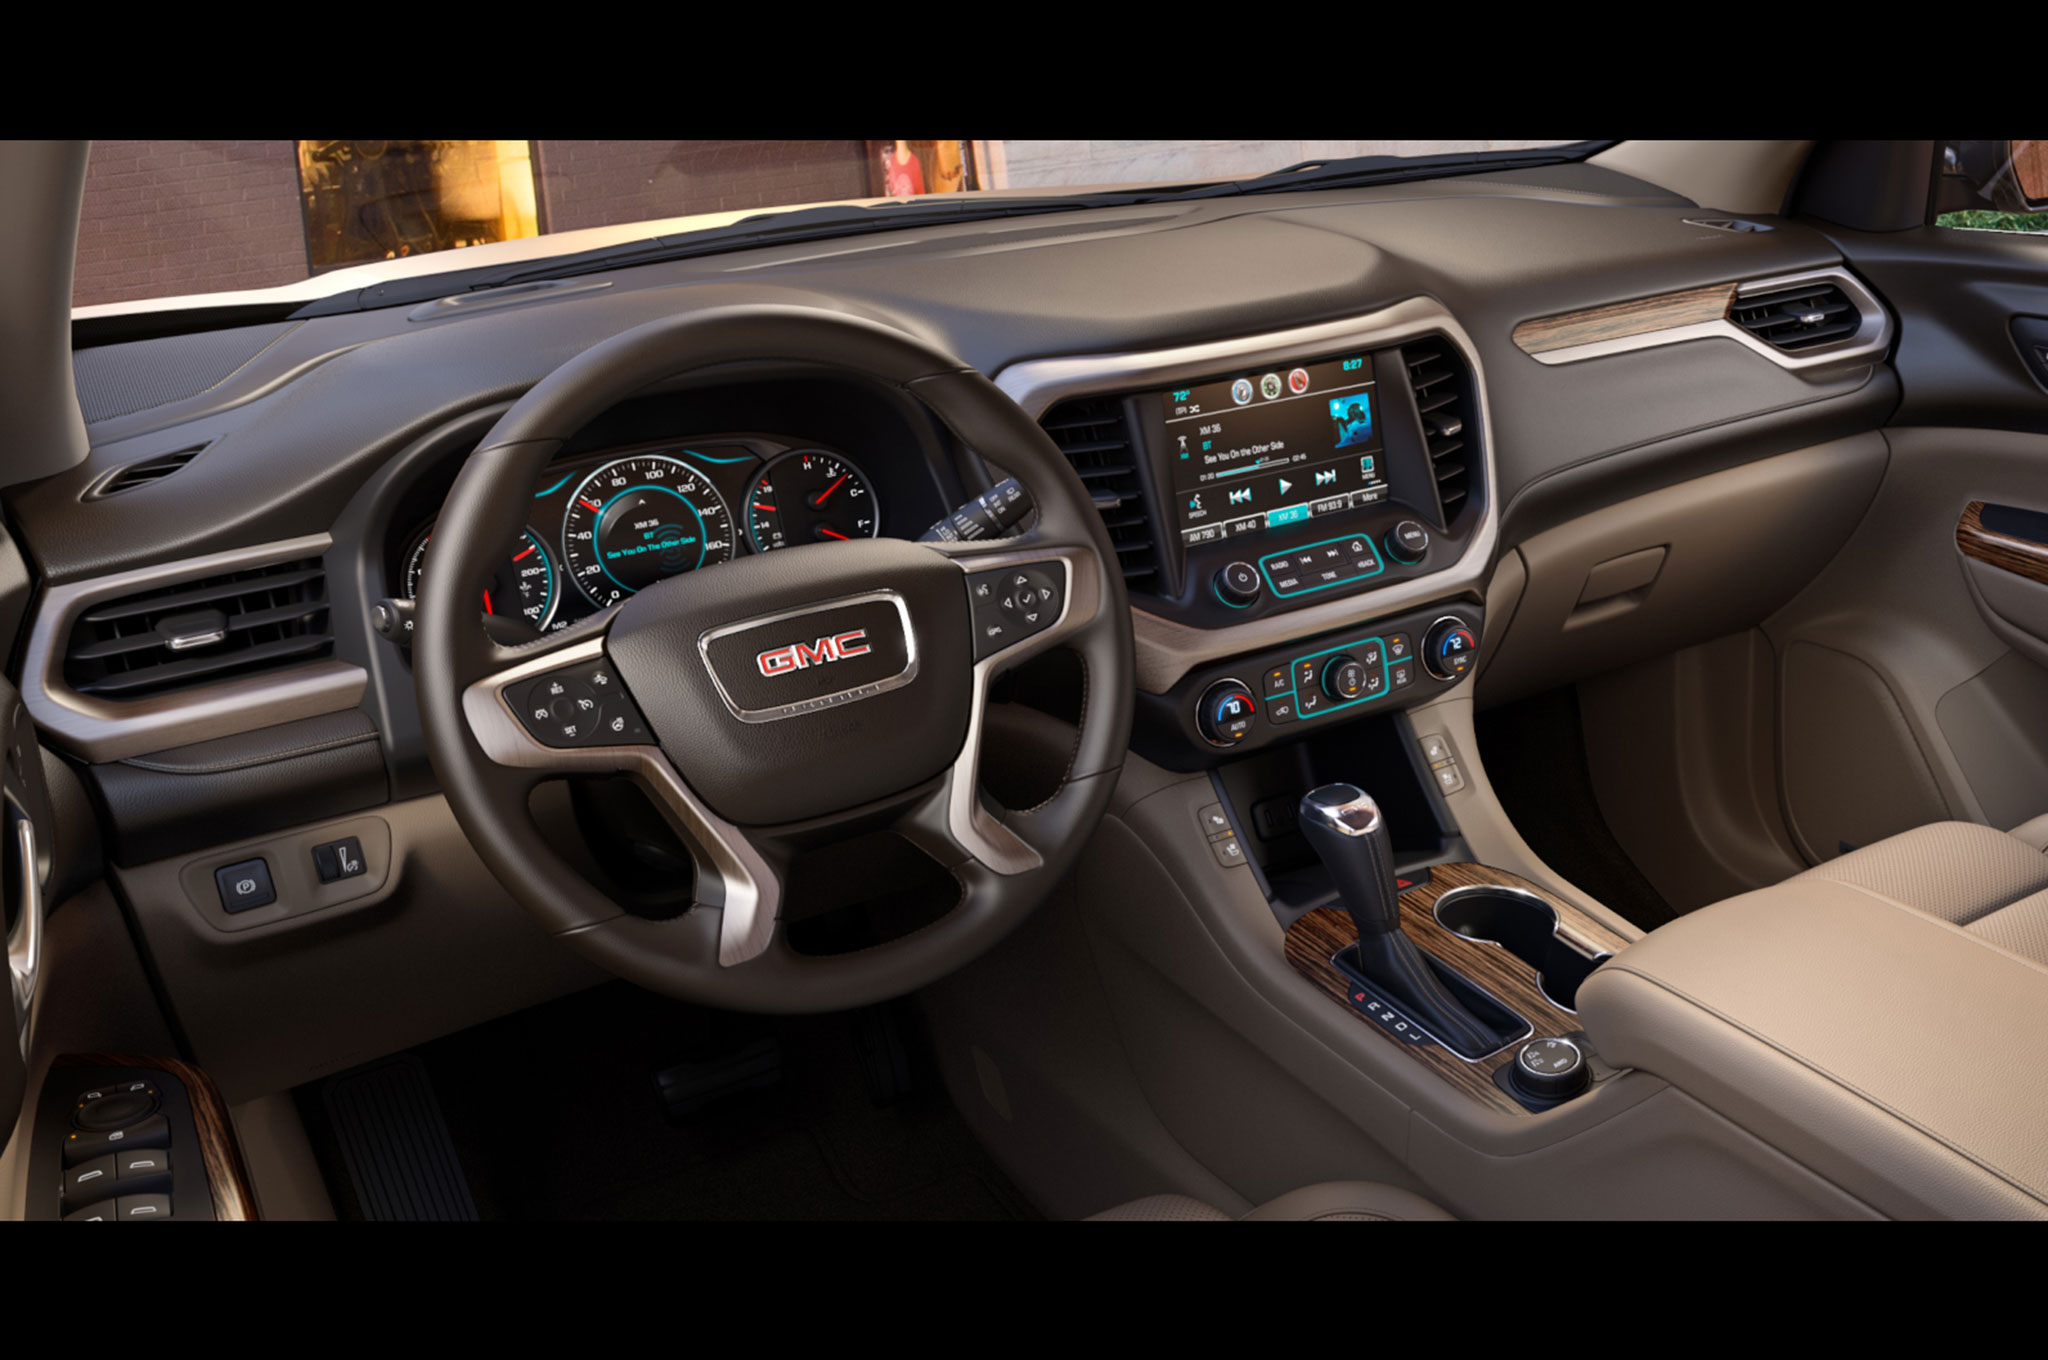 2017 Gmc Acadia Features Rear Seat Reminder Photo Image Gallery